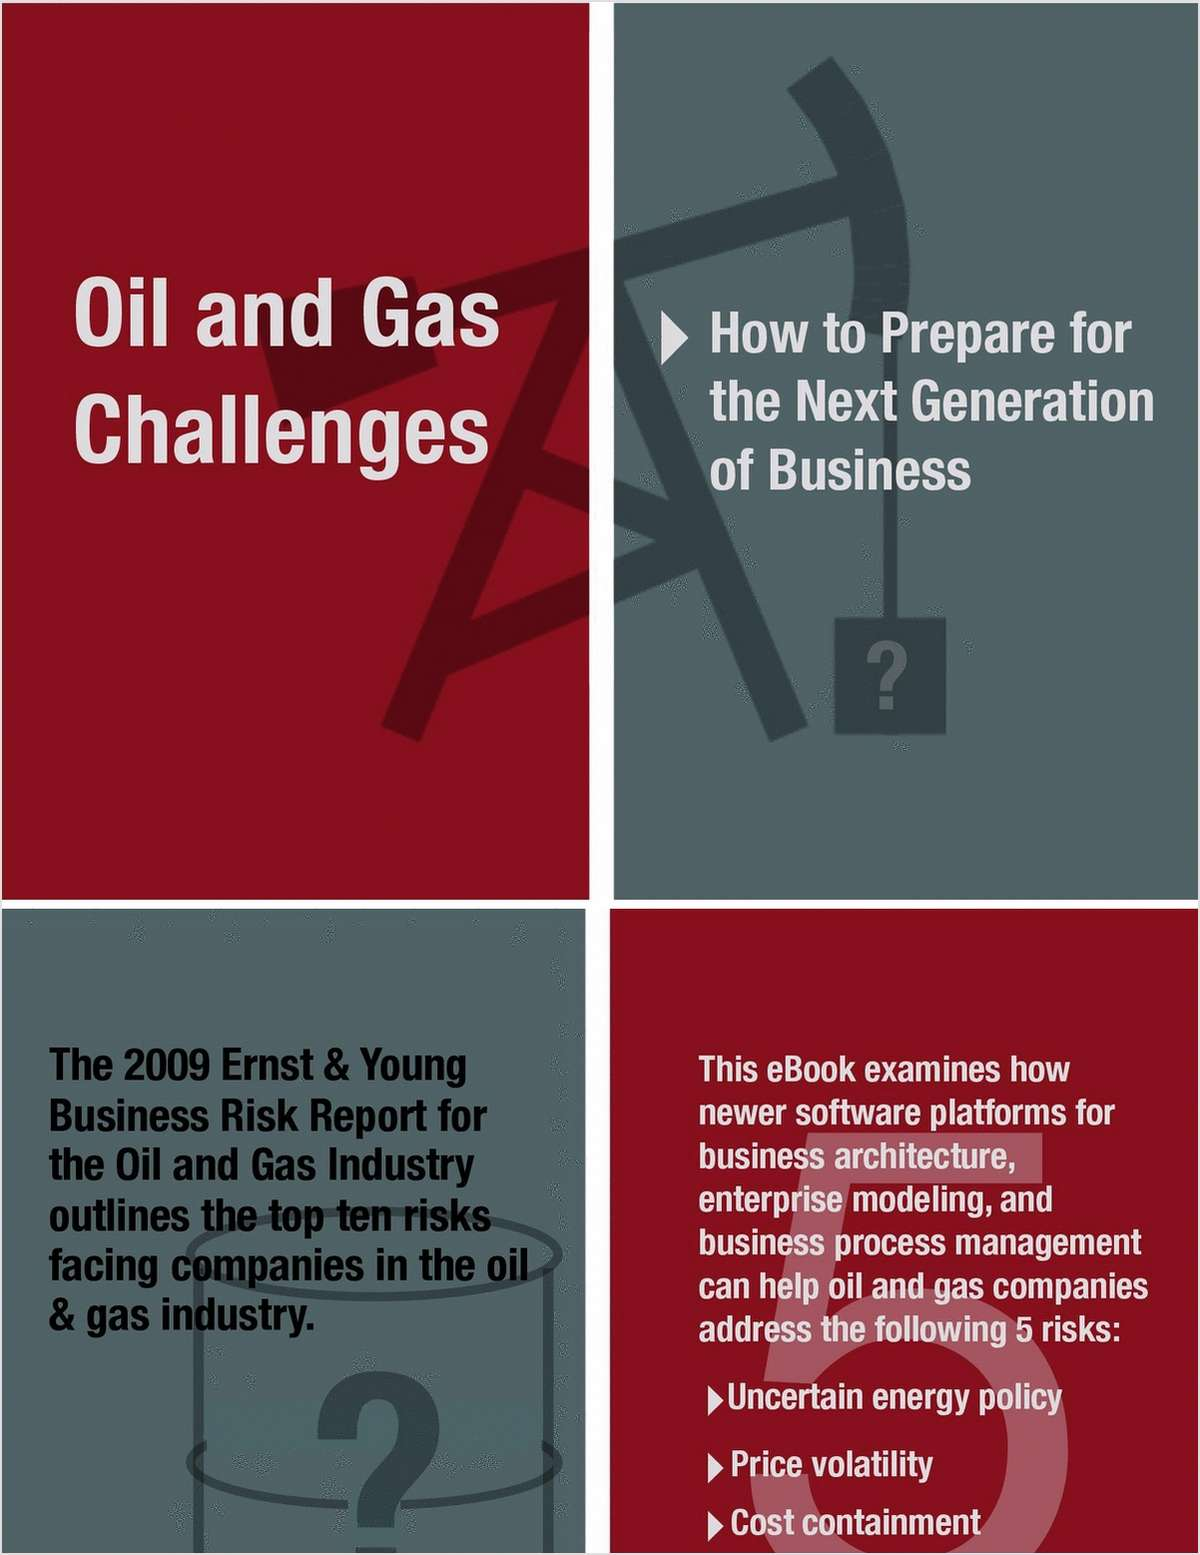 Oil and Gas Challenges: How to Prepare for the Next Generation of Business